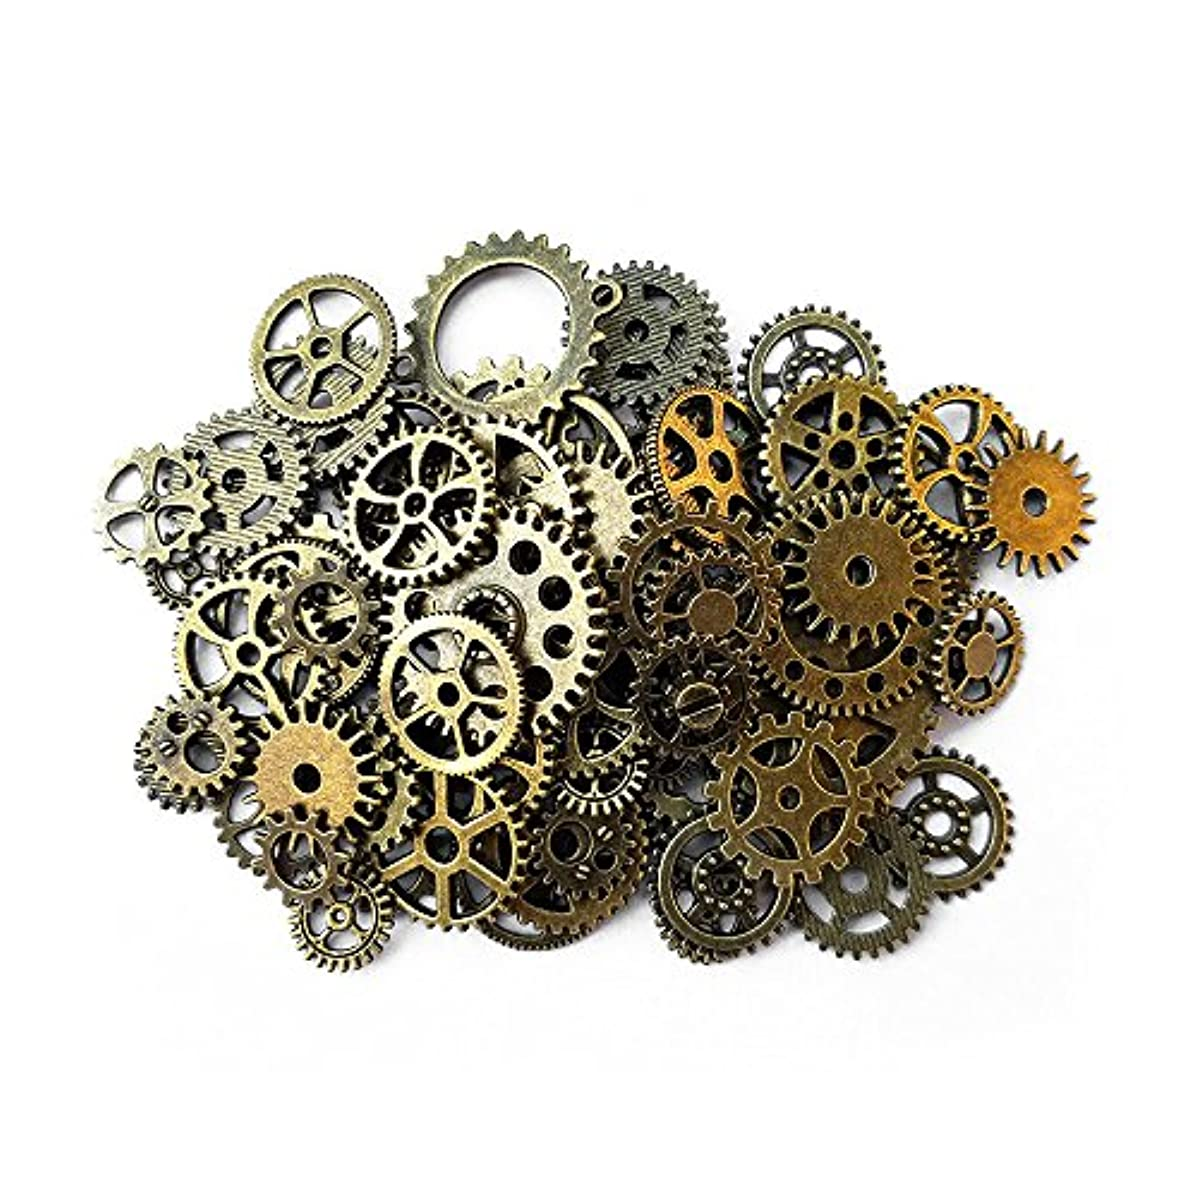 Aoyoho 100 Gram Assorted Antique Steampunk Gears Charms Pendant Clock Watch Wheel Gear for Crafting